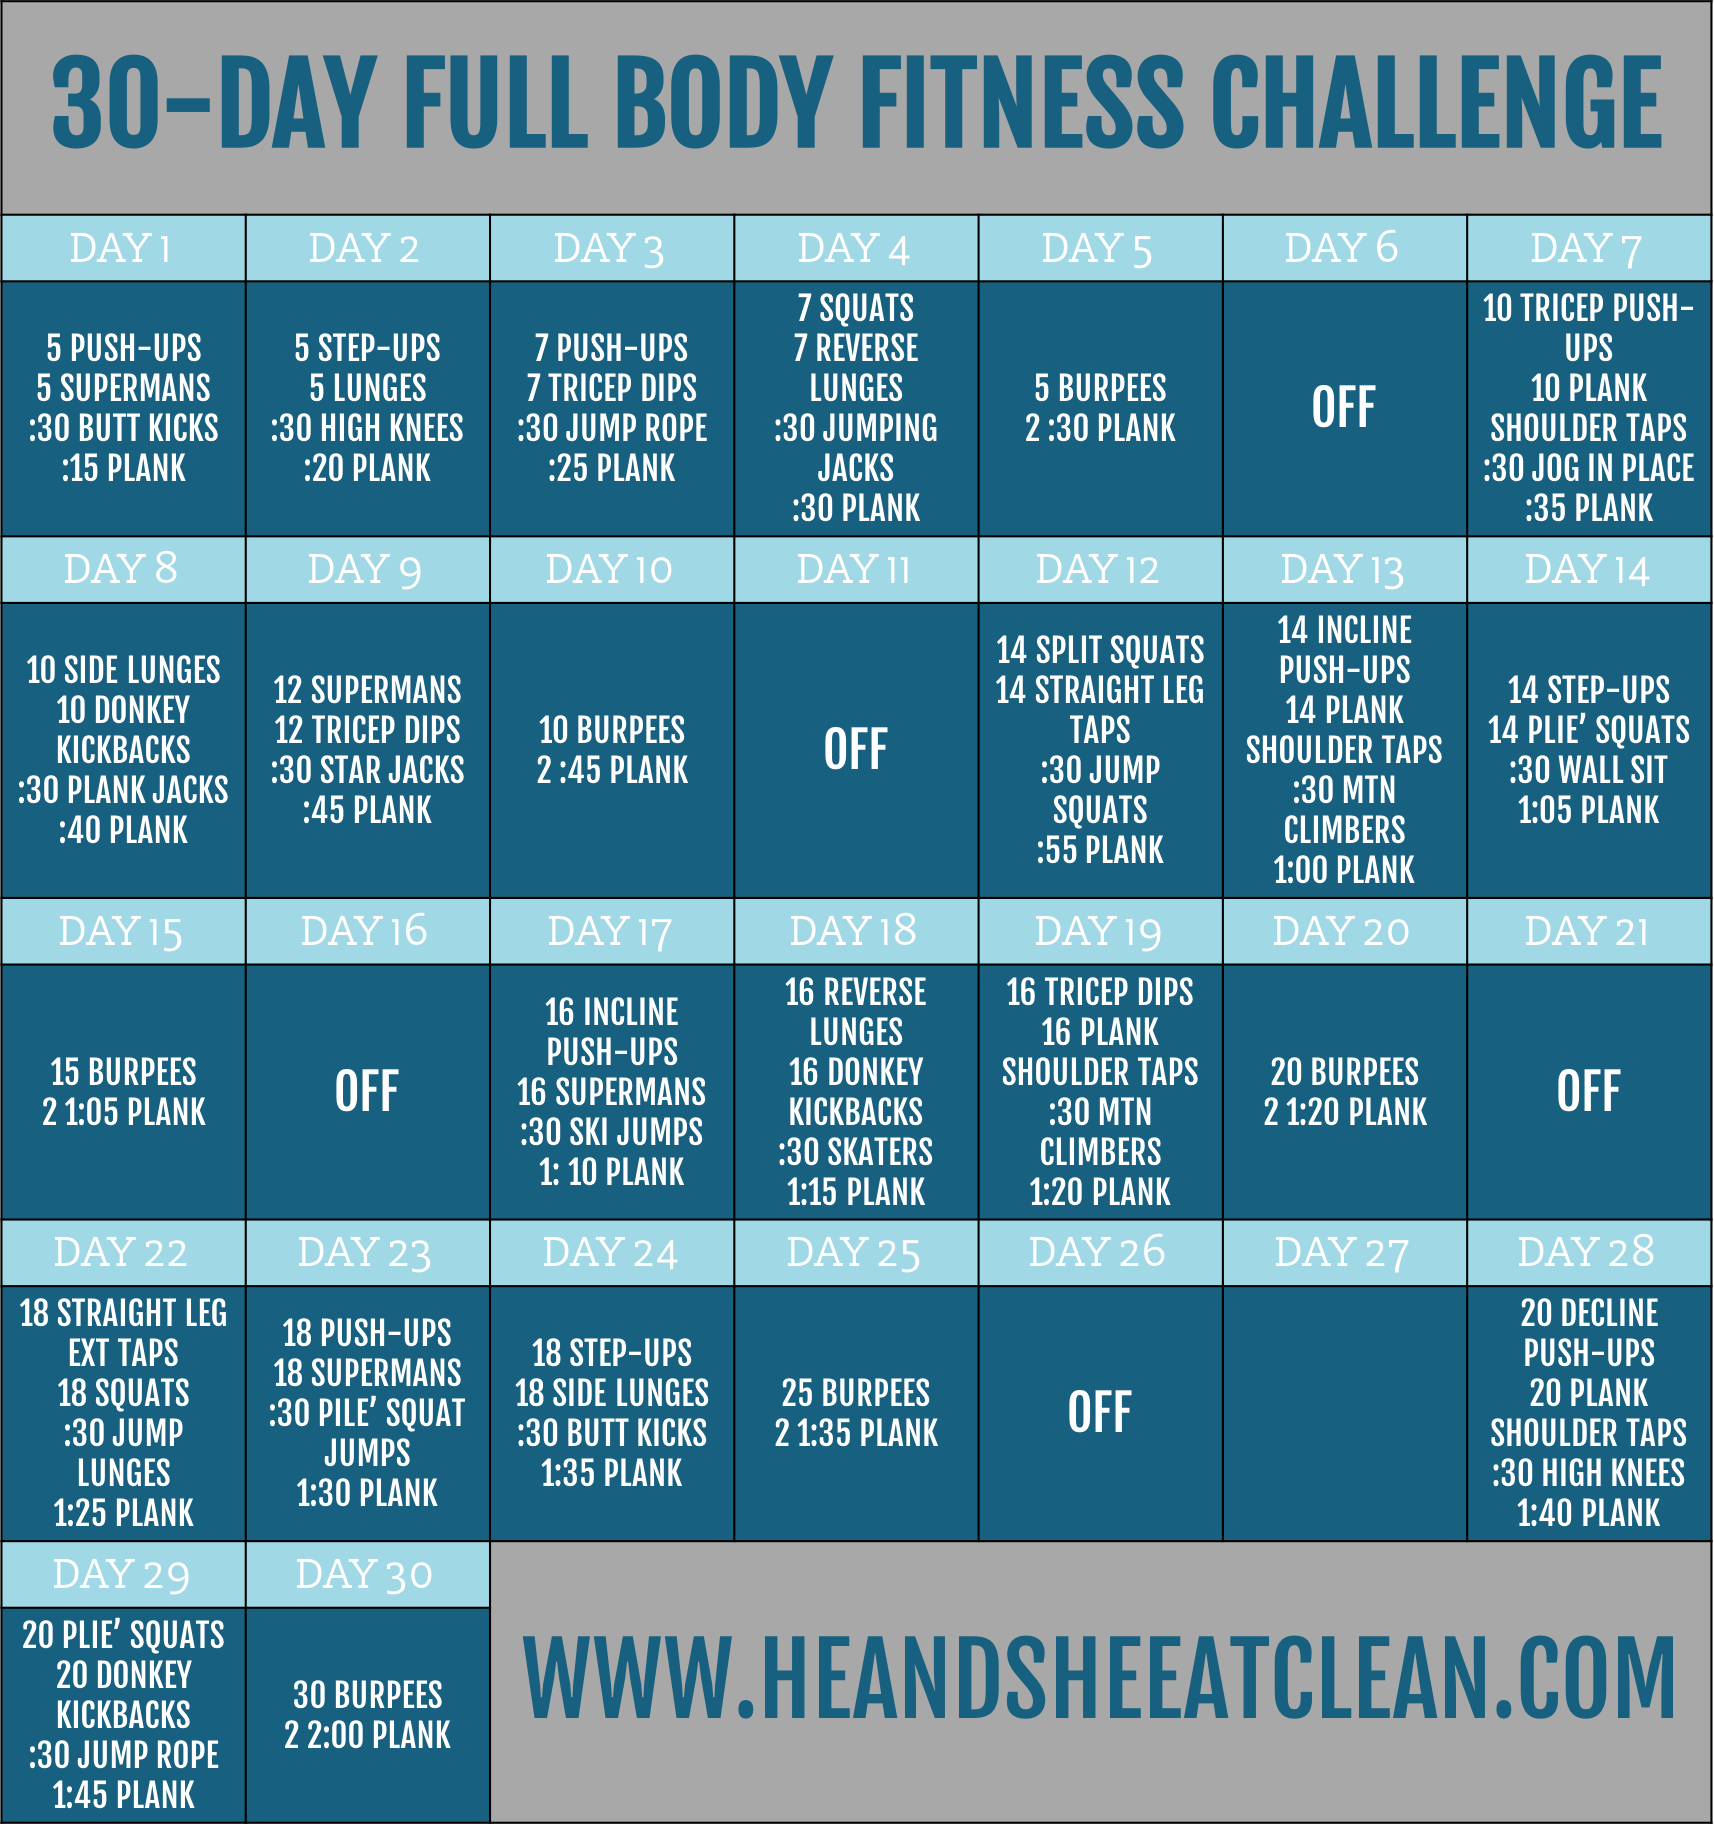 30-Day Full Body Fitness Challenge